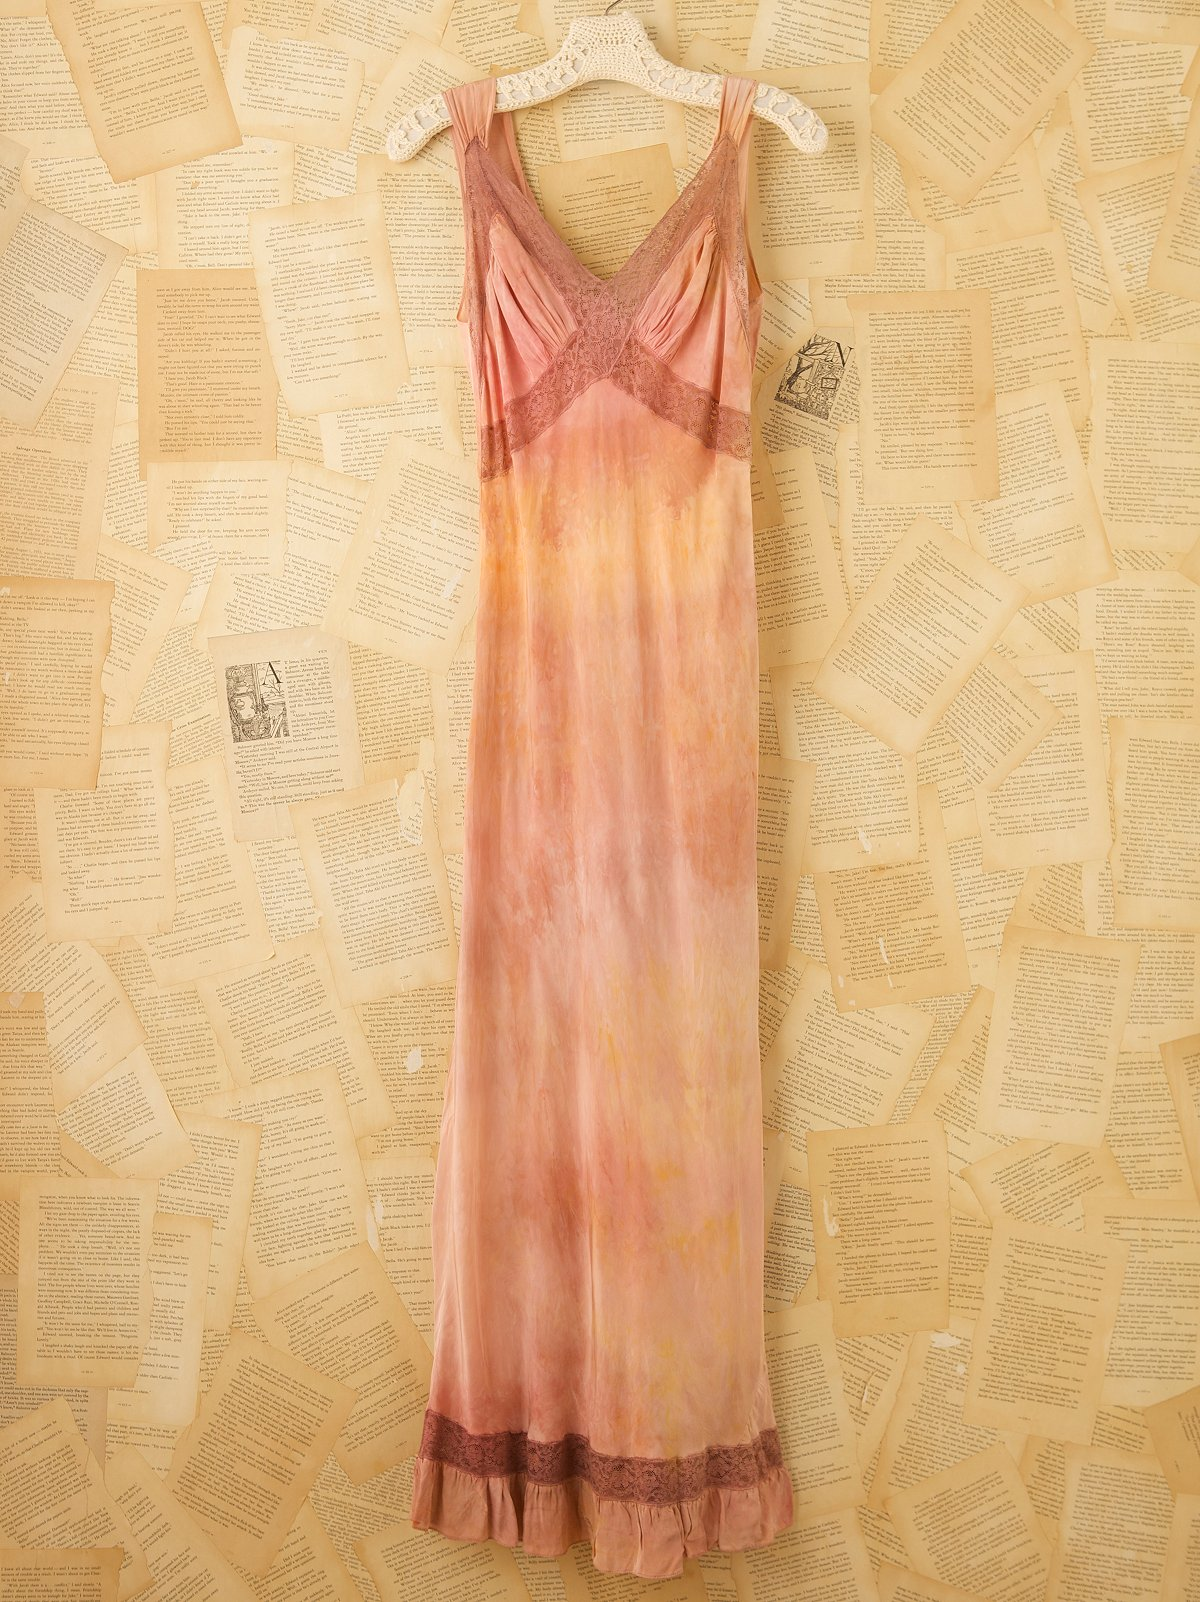 Vintage Hand Dyed 1940s Gown